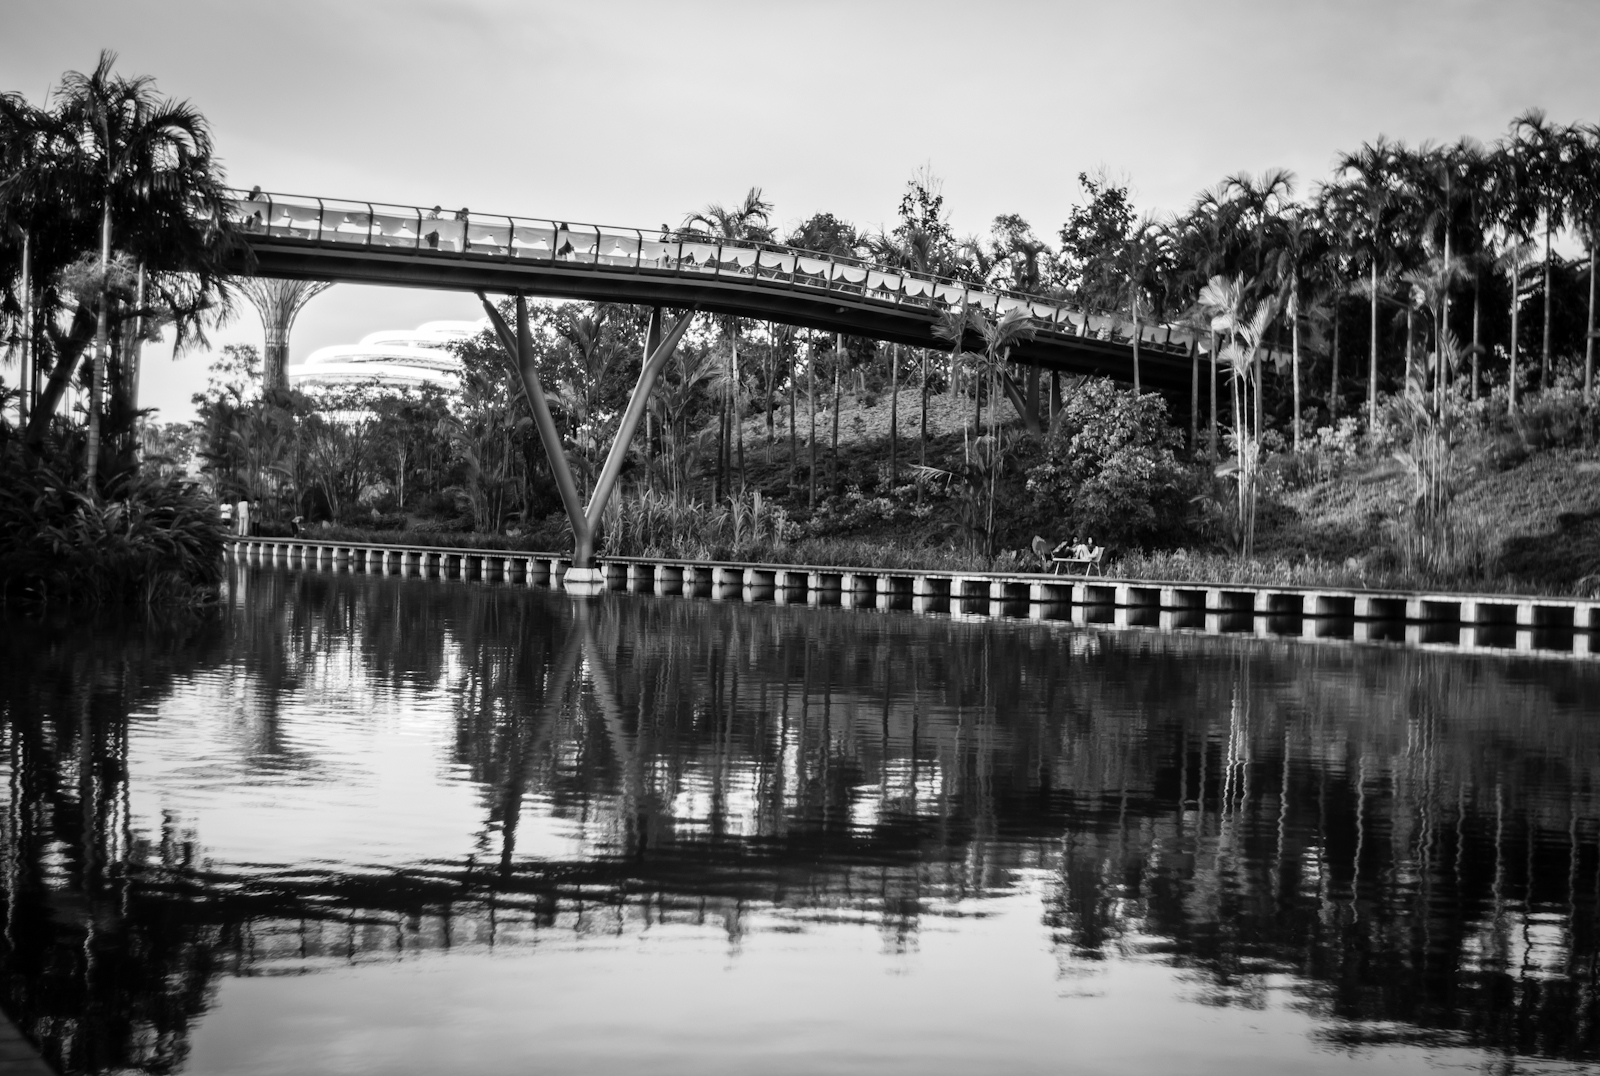 A bridge and its reflection in the water